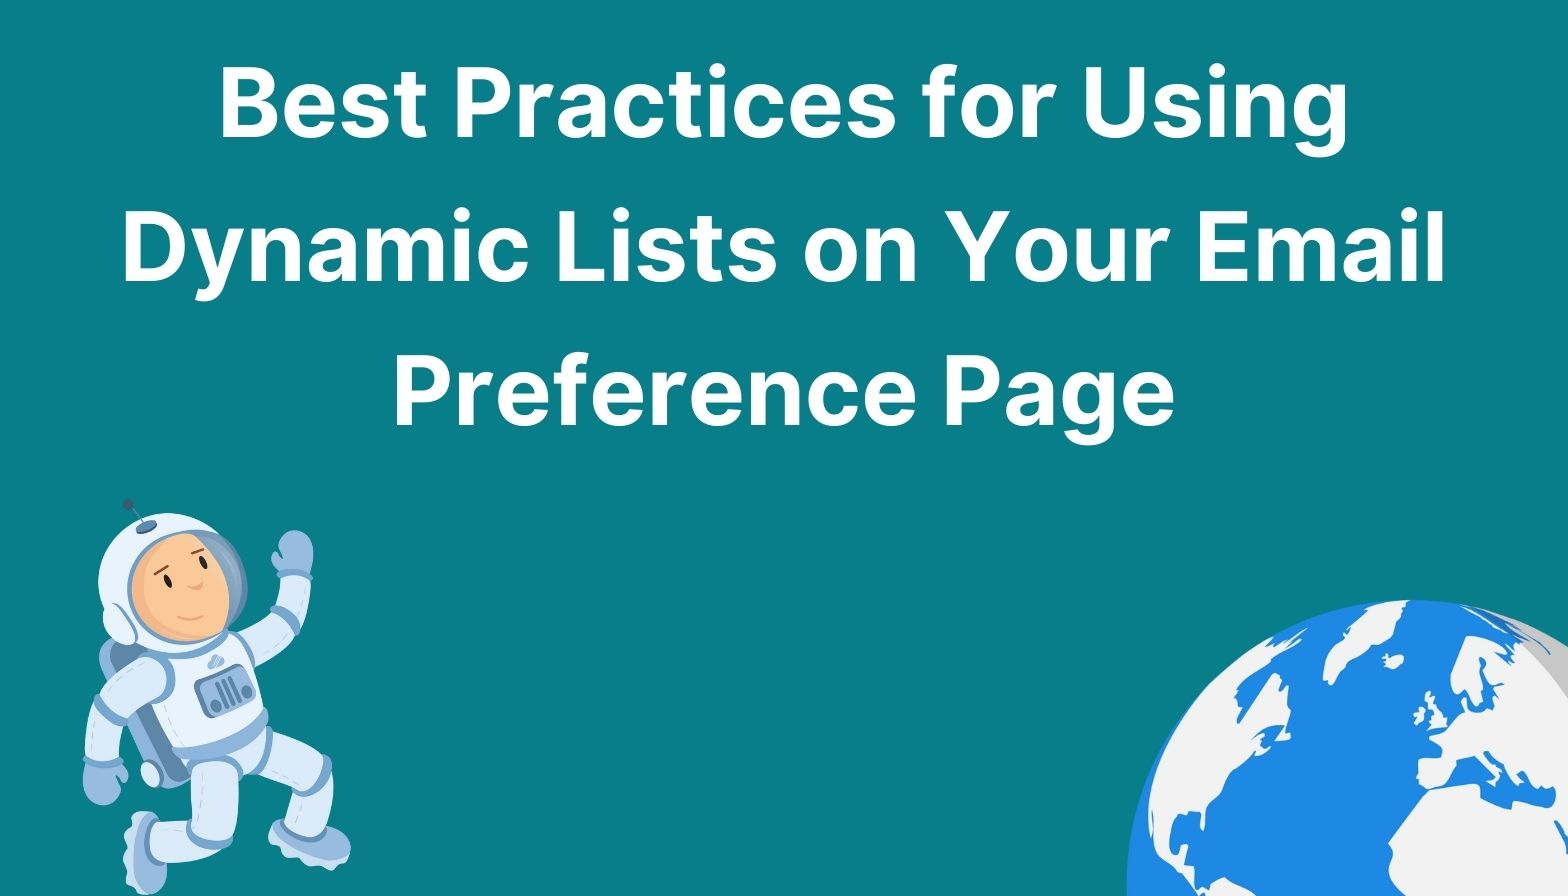 Feature image: Best practices for using dynamic lists on your email preference page